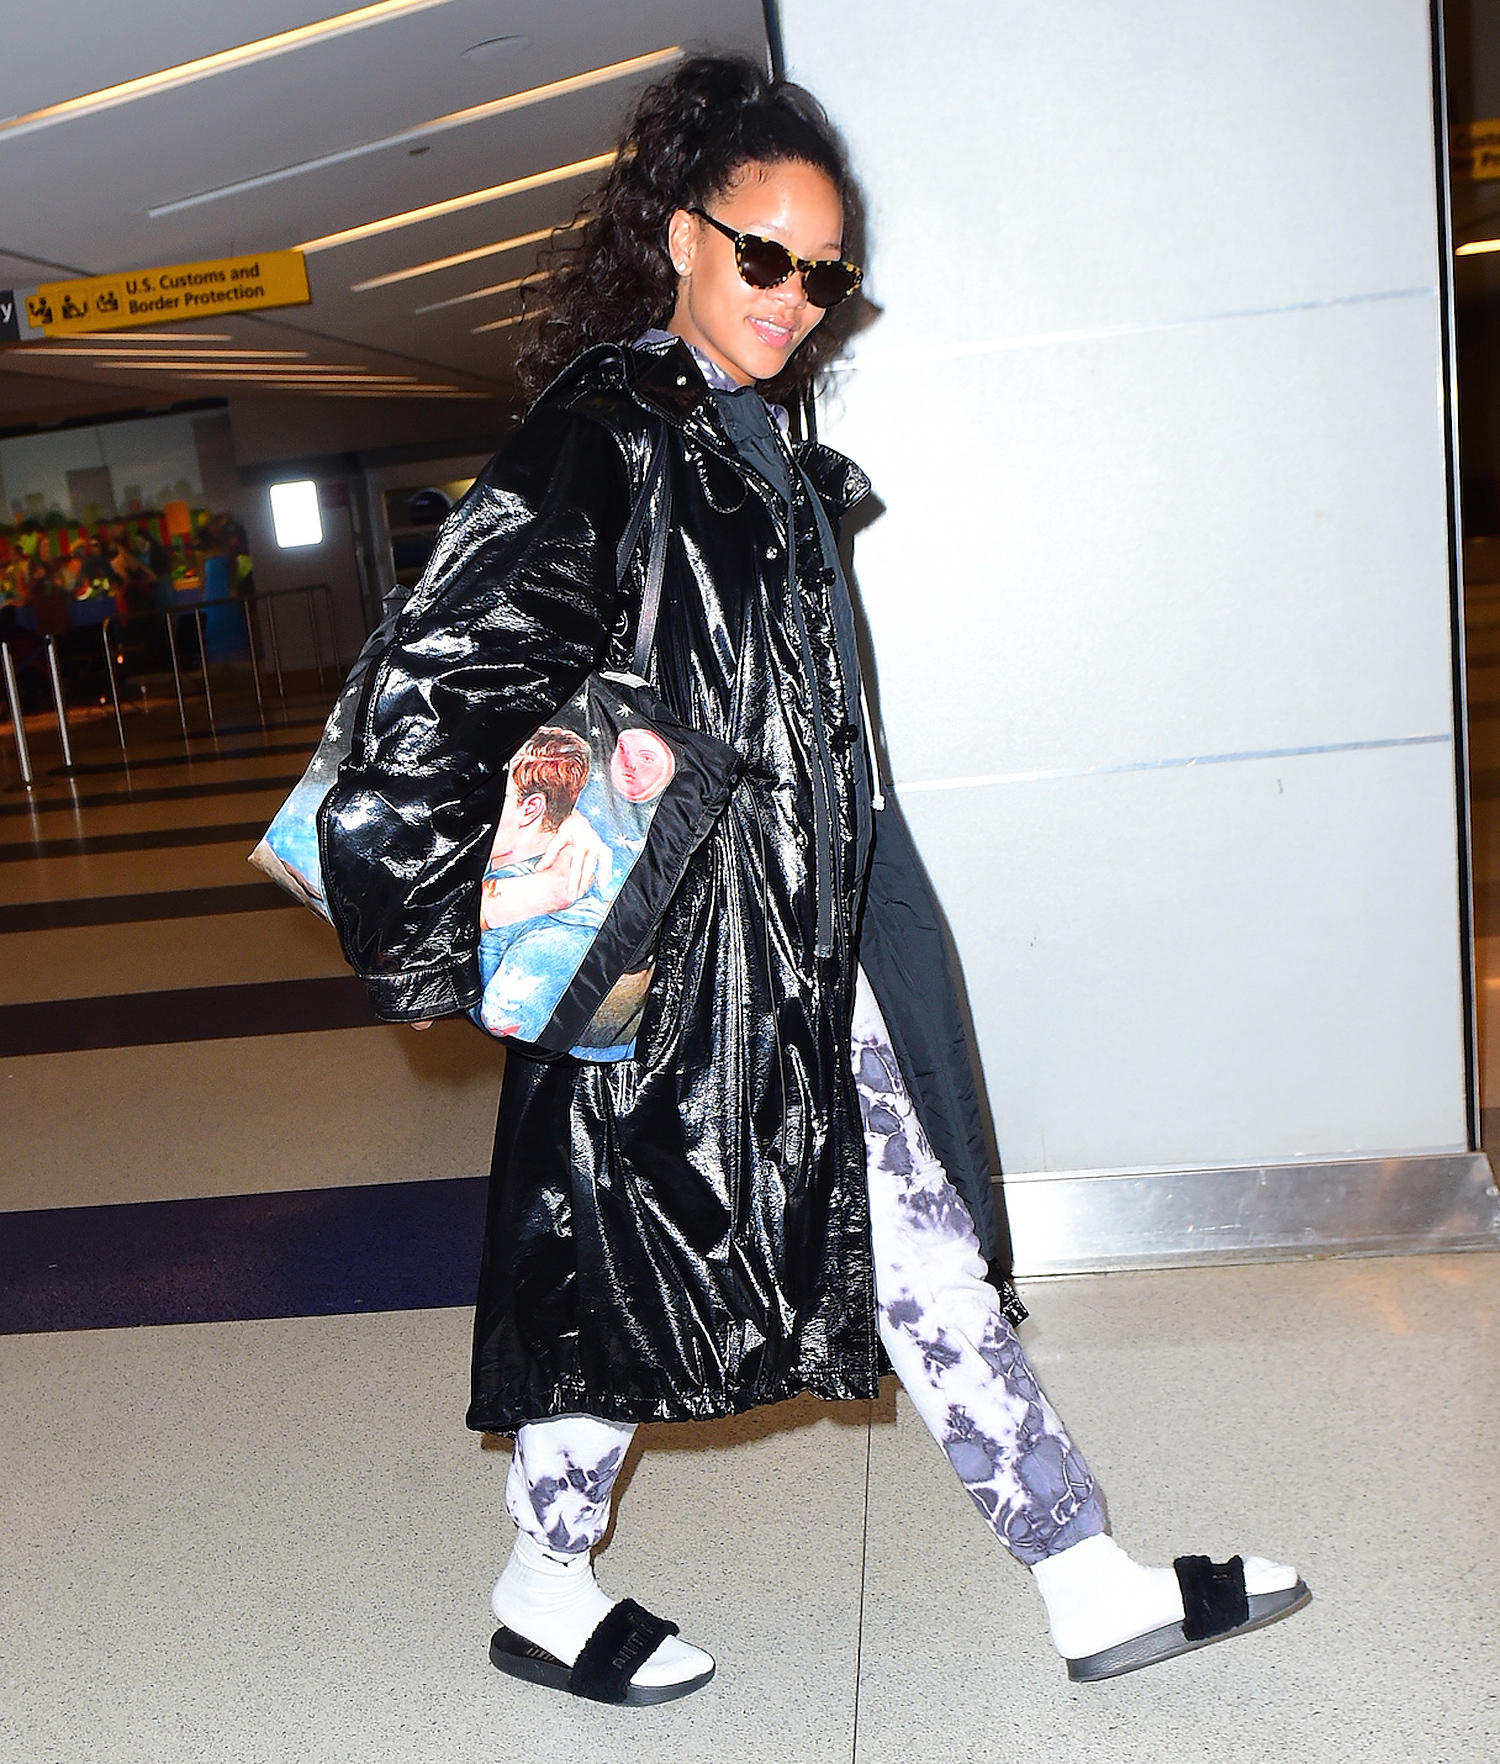 Rihanna Starts Off the Year with a Big Smile after Celebrating New Year's with a Mystery Man in London